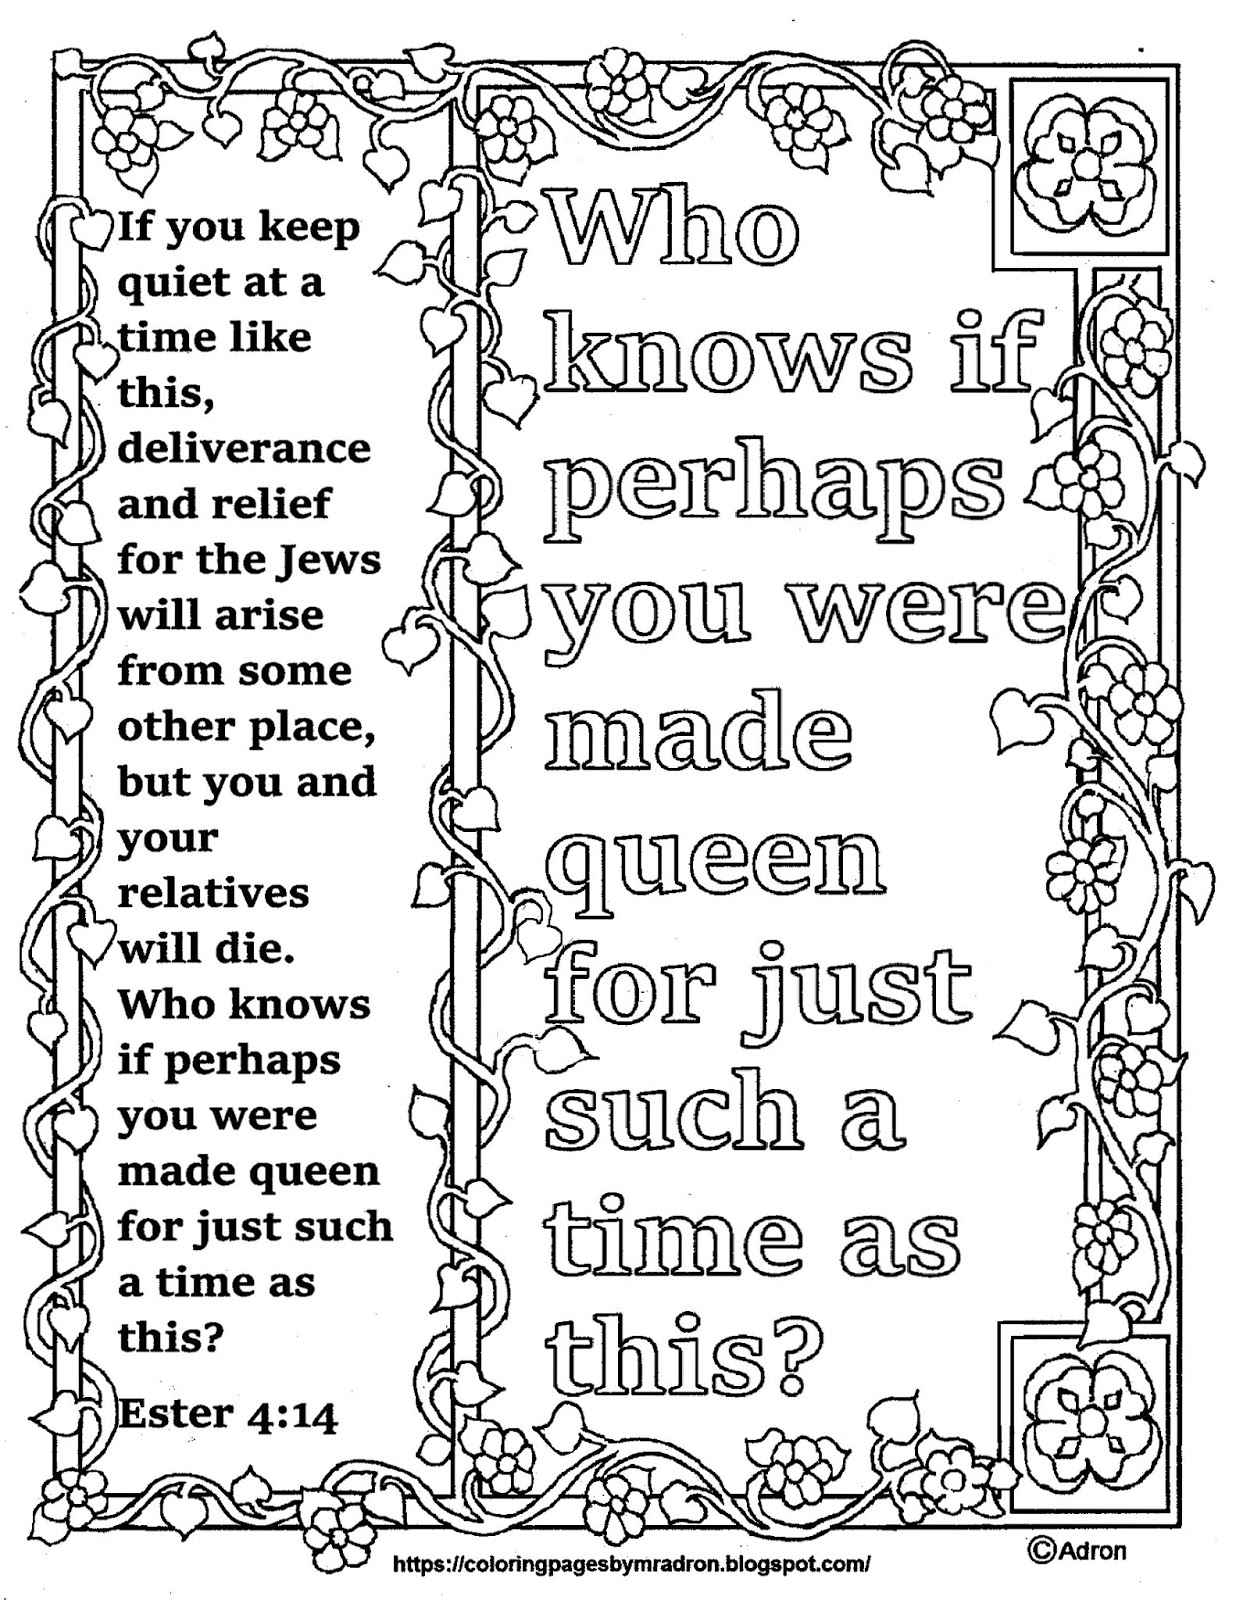 Coloring Pages For Kids By Mr Adron Ester 4 14 Print And Color Page Perhaps You Were Born For Such A Time As This Bible Verse